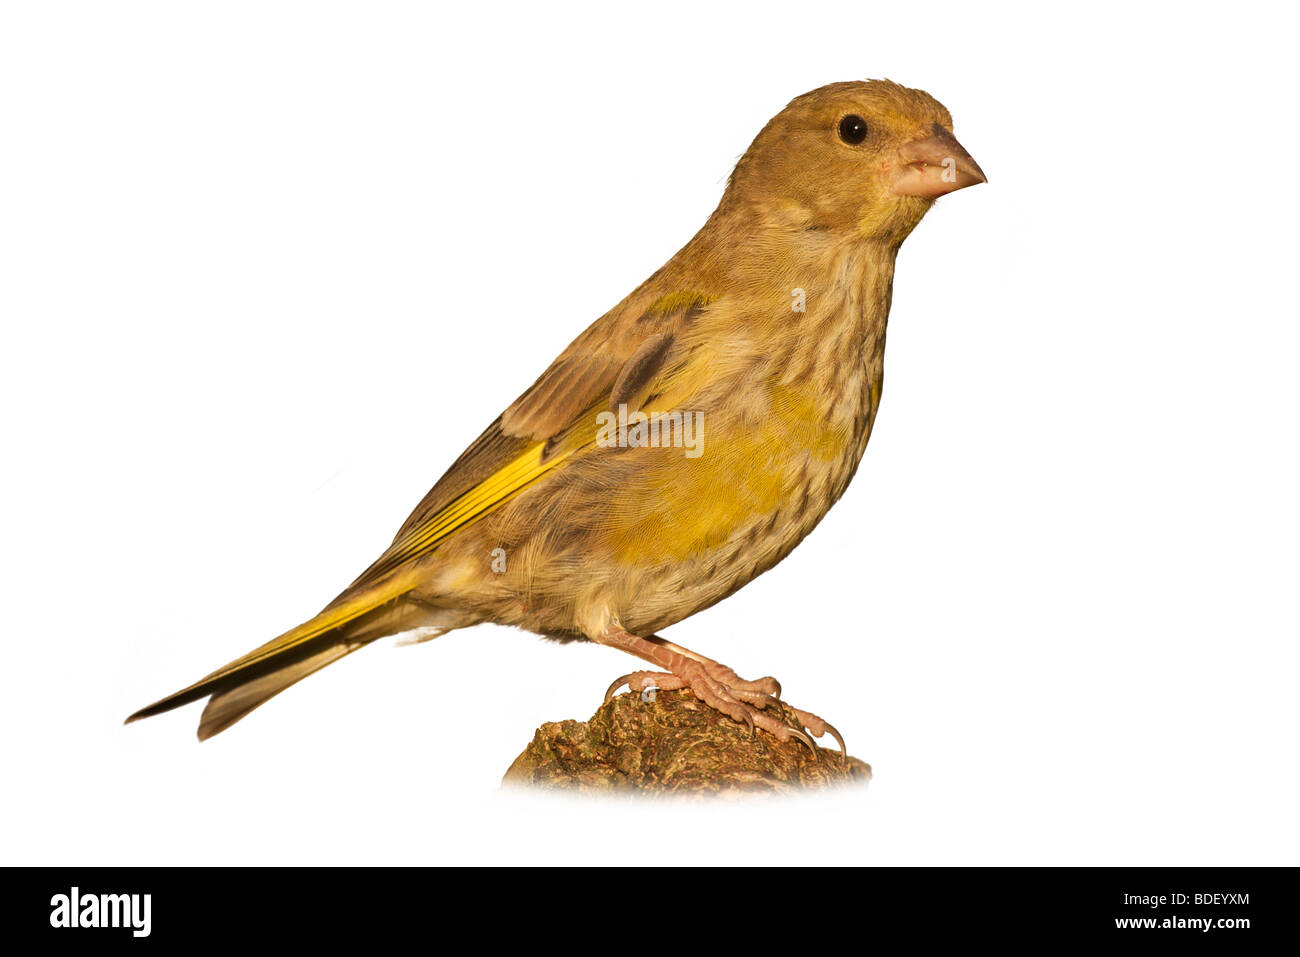 a young greenfinch isolated against a white background - Stock Image